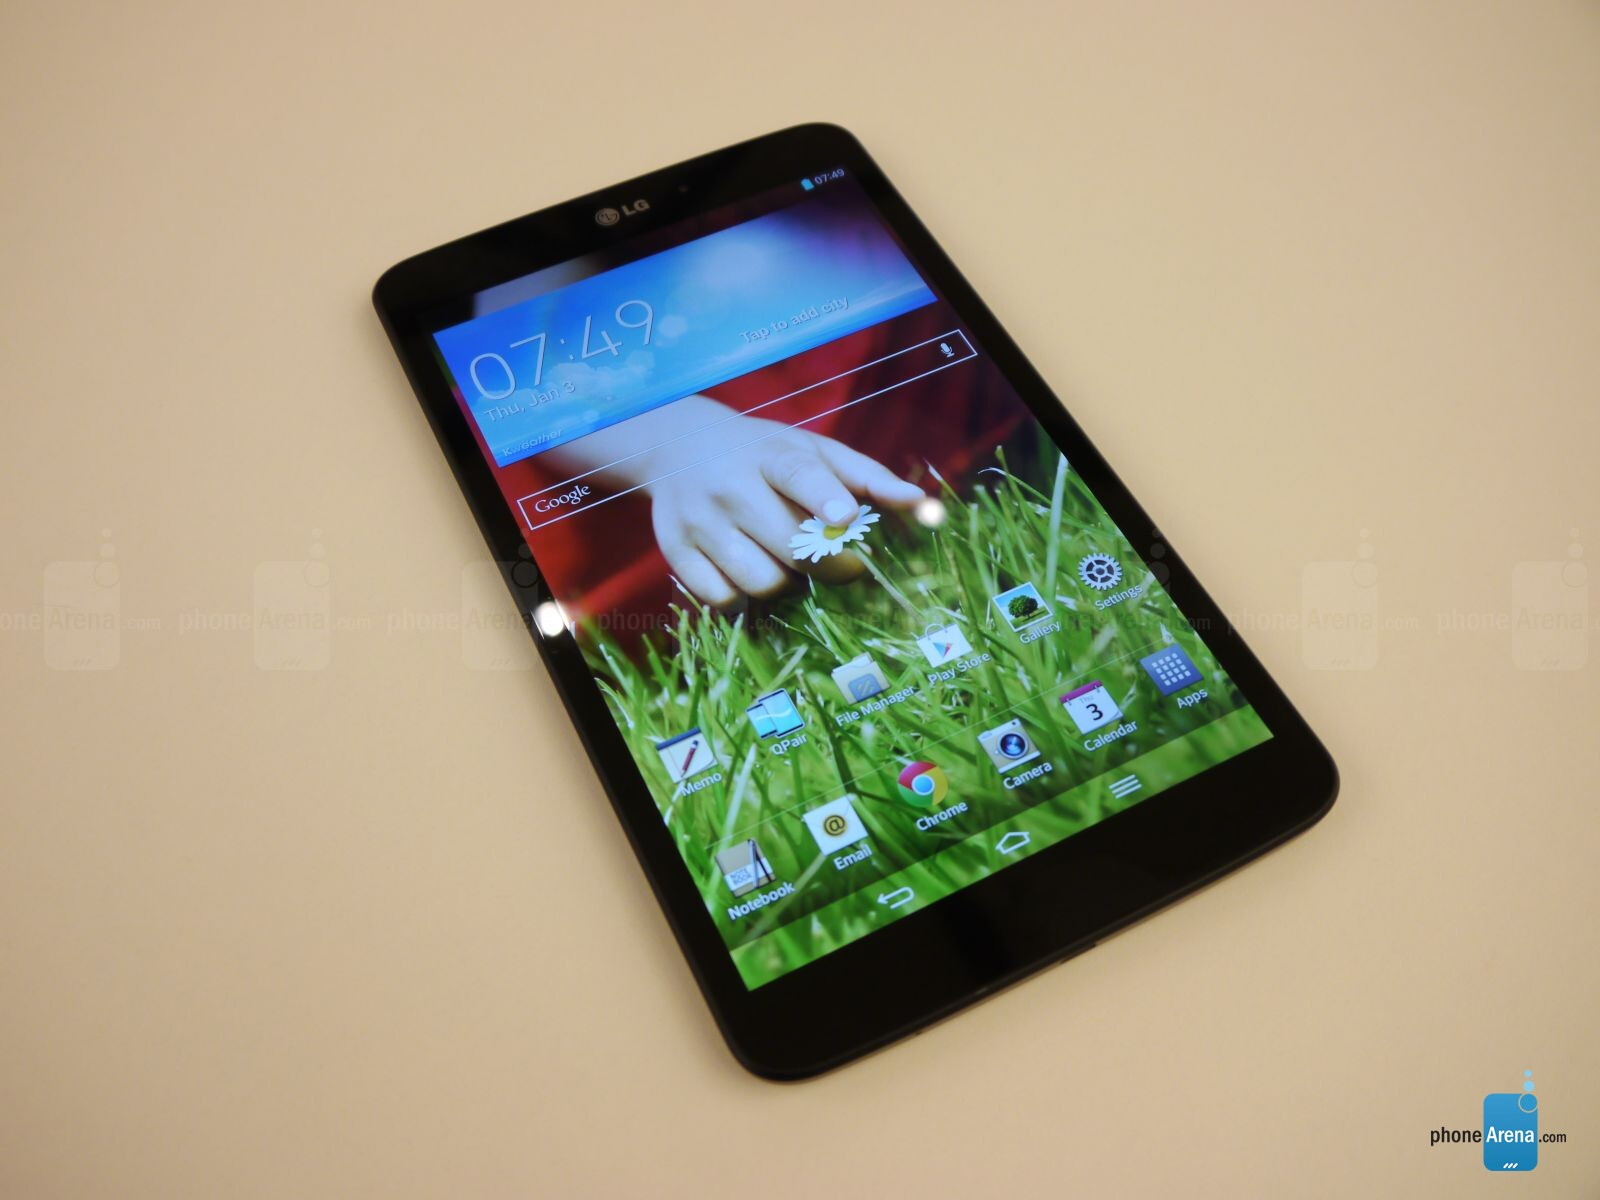 LG G Pad 8.3 Hands-on | PhoneArena reviews